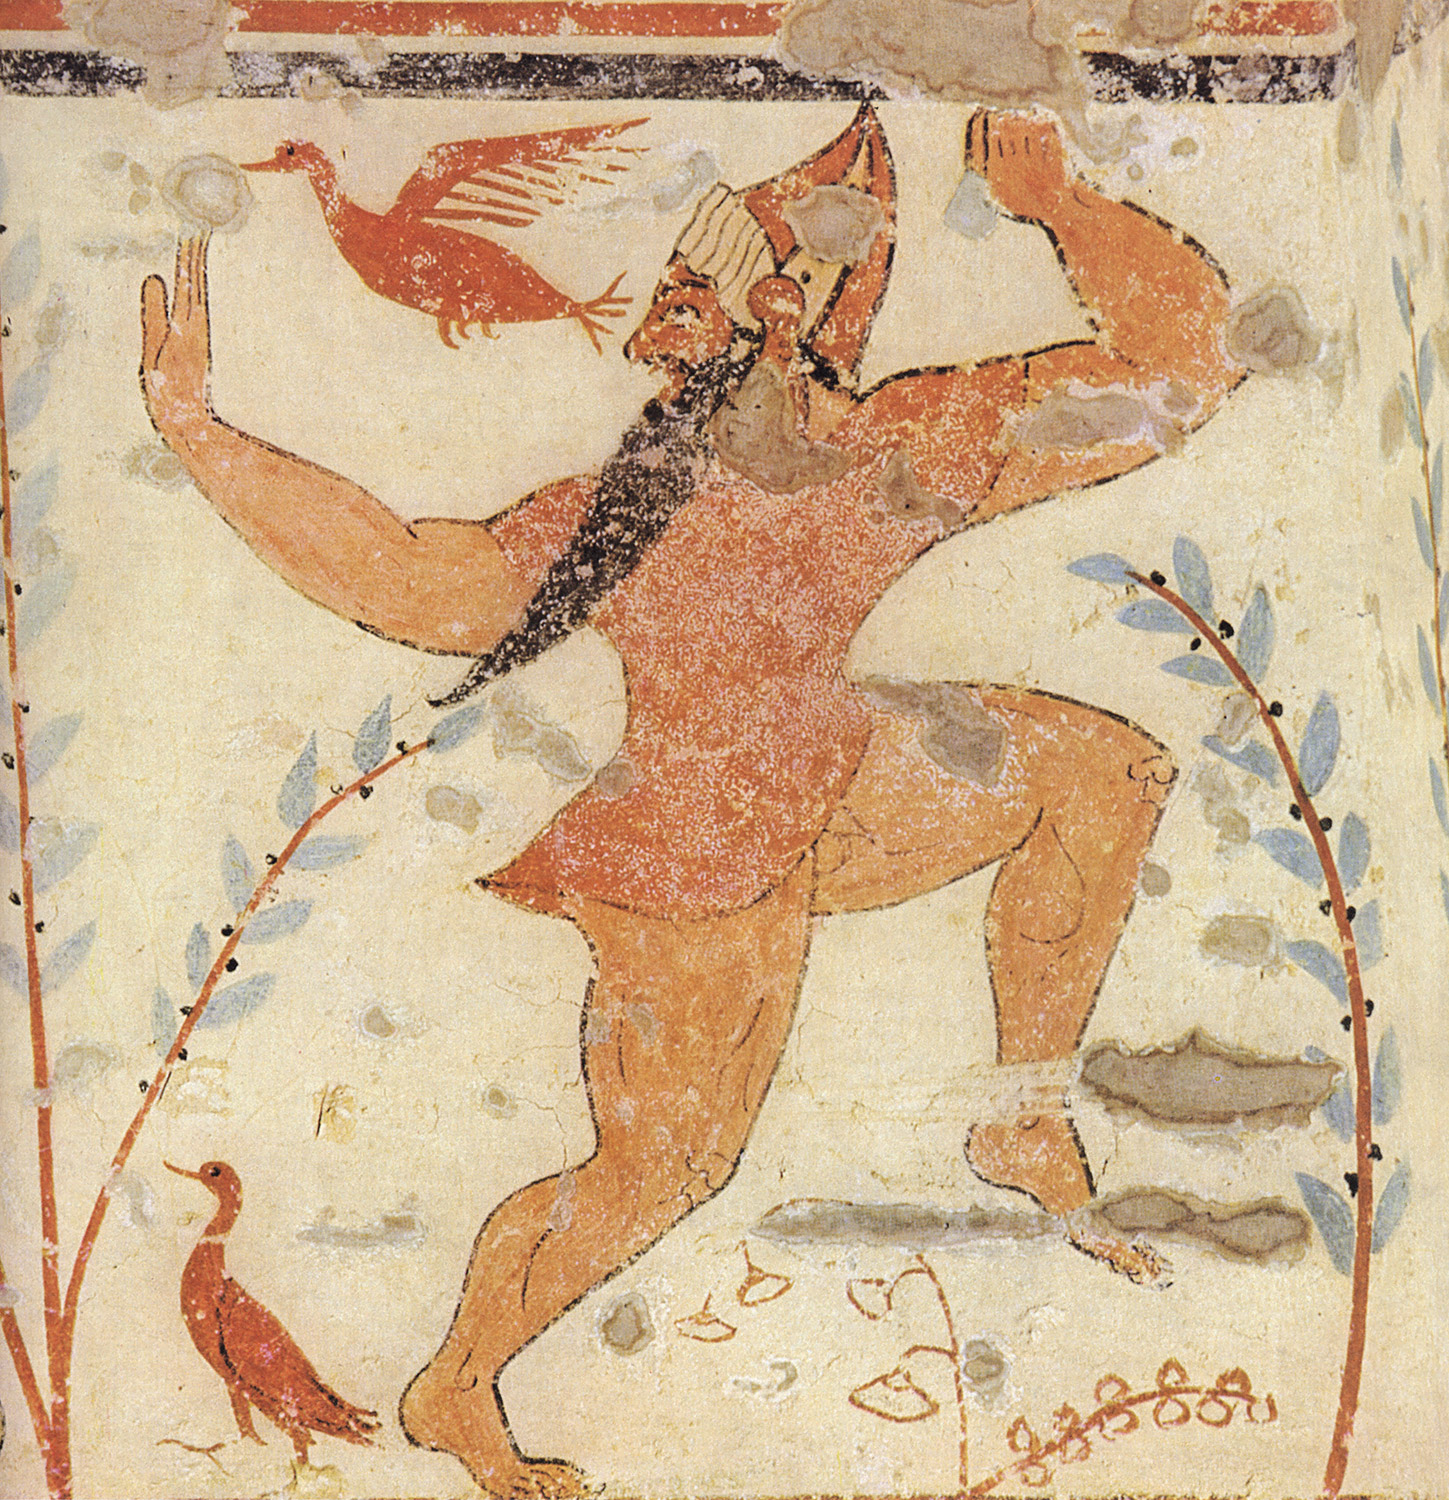 Escape of man wearing mask. 6th century BCE. Tarquinia, Tomb of the Augurs